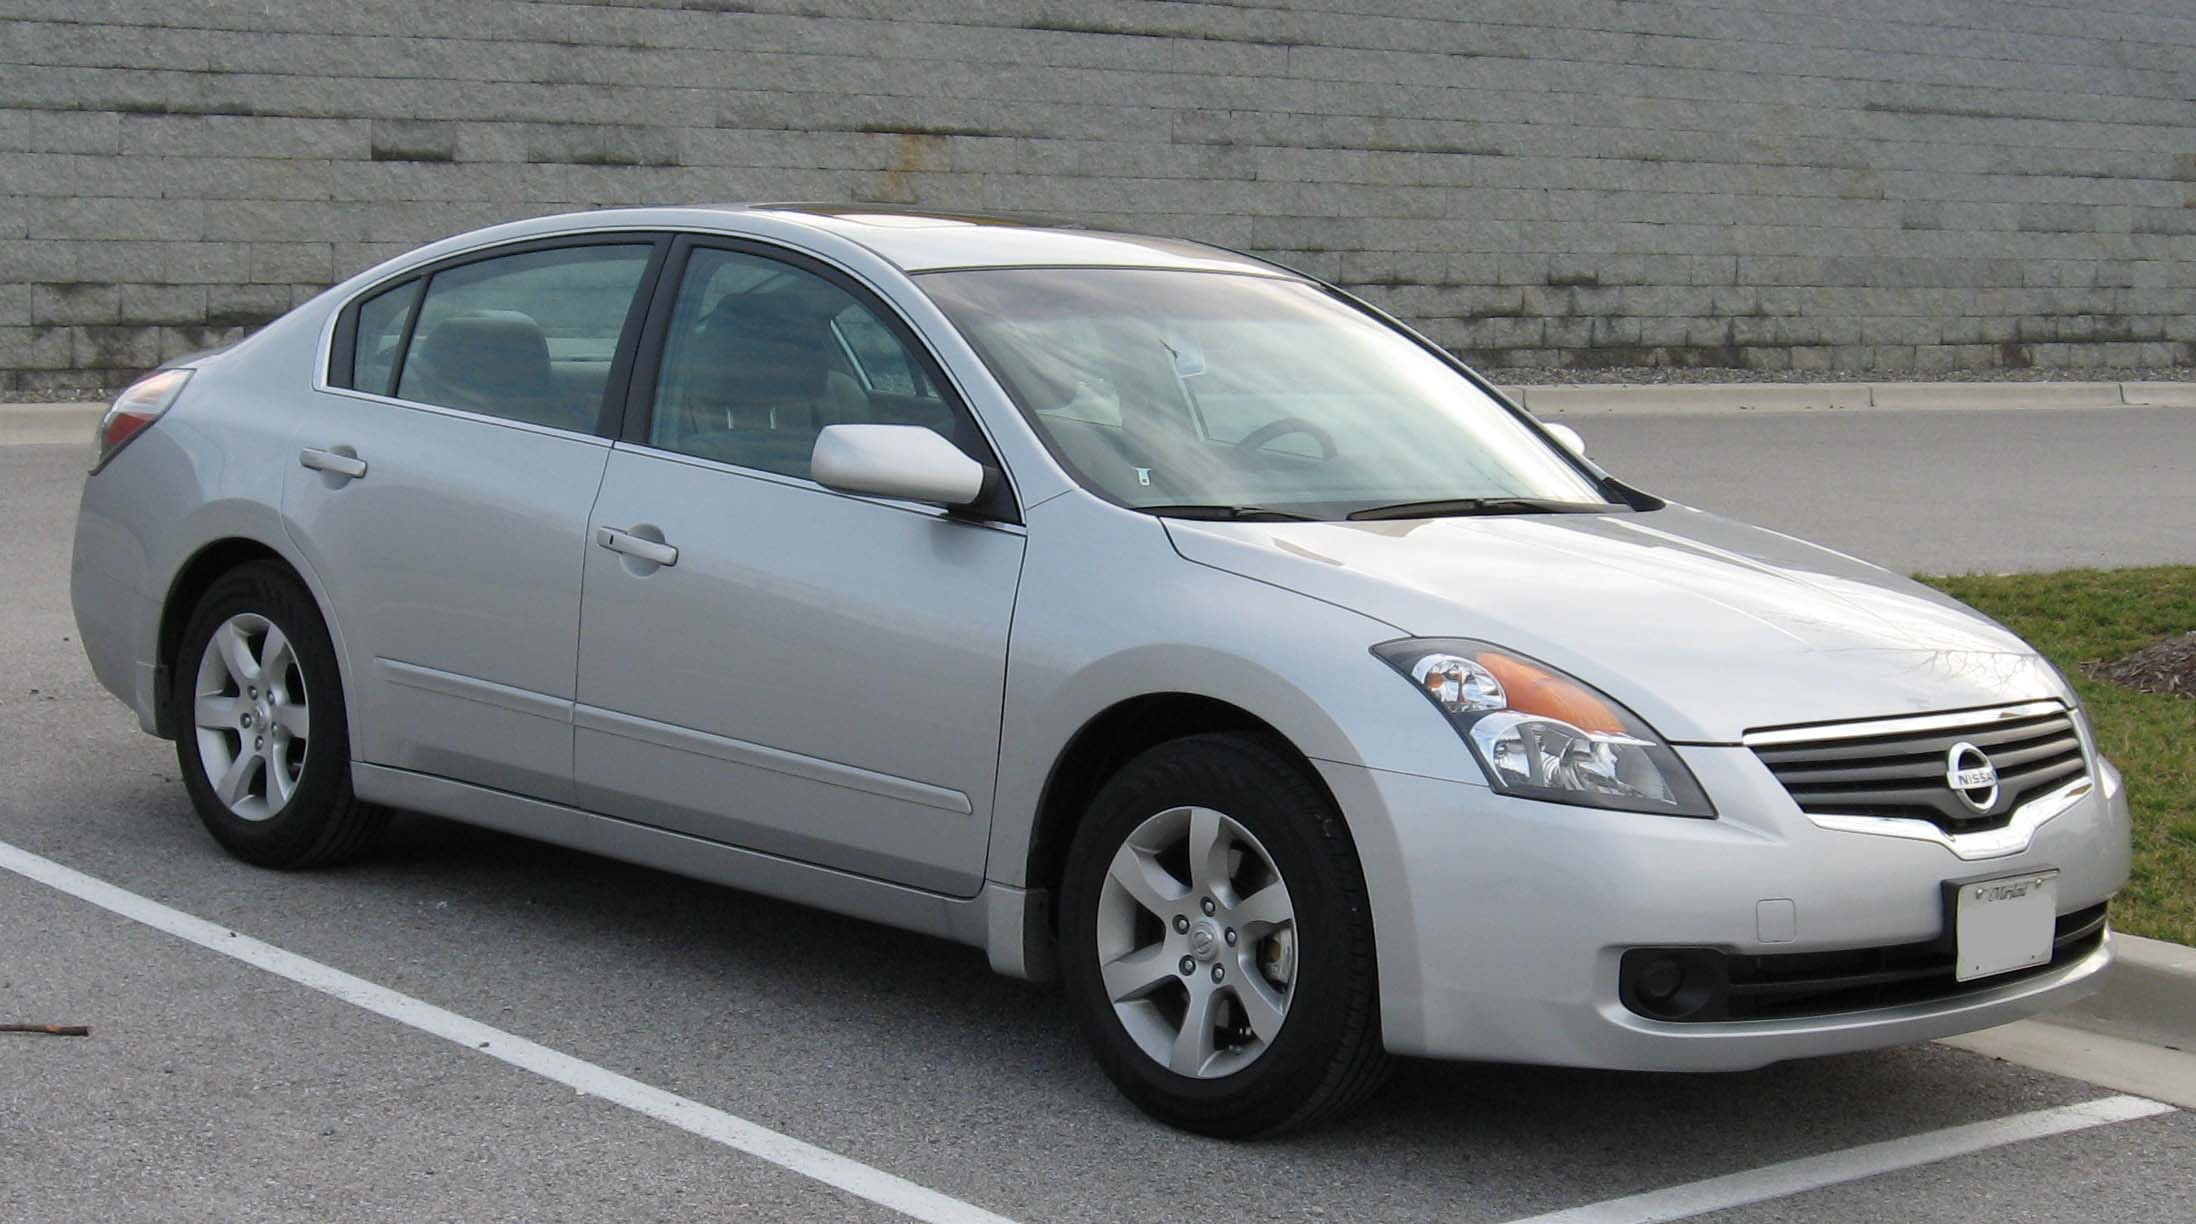 Nissan Altima 2.5 S >> File:2007-Nissan-Altima-2.5S-2.jpg - Wikimedia Commons